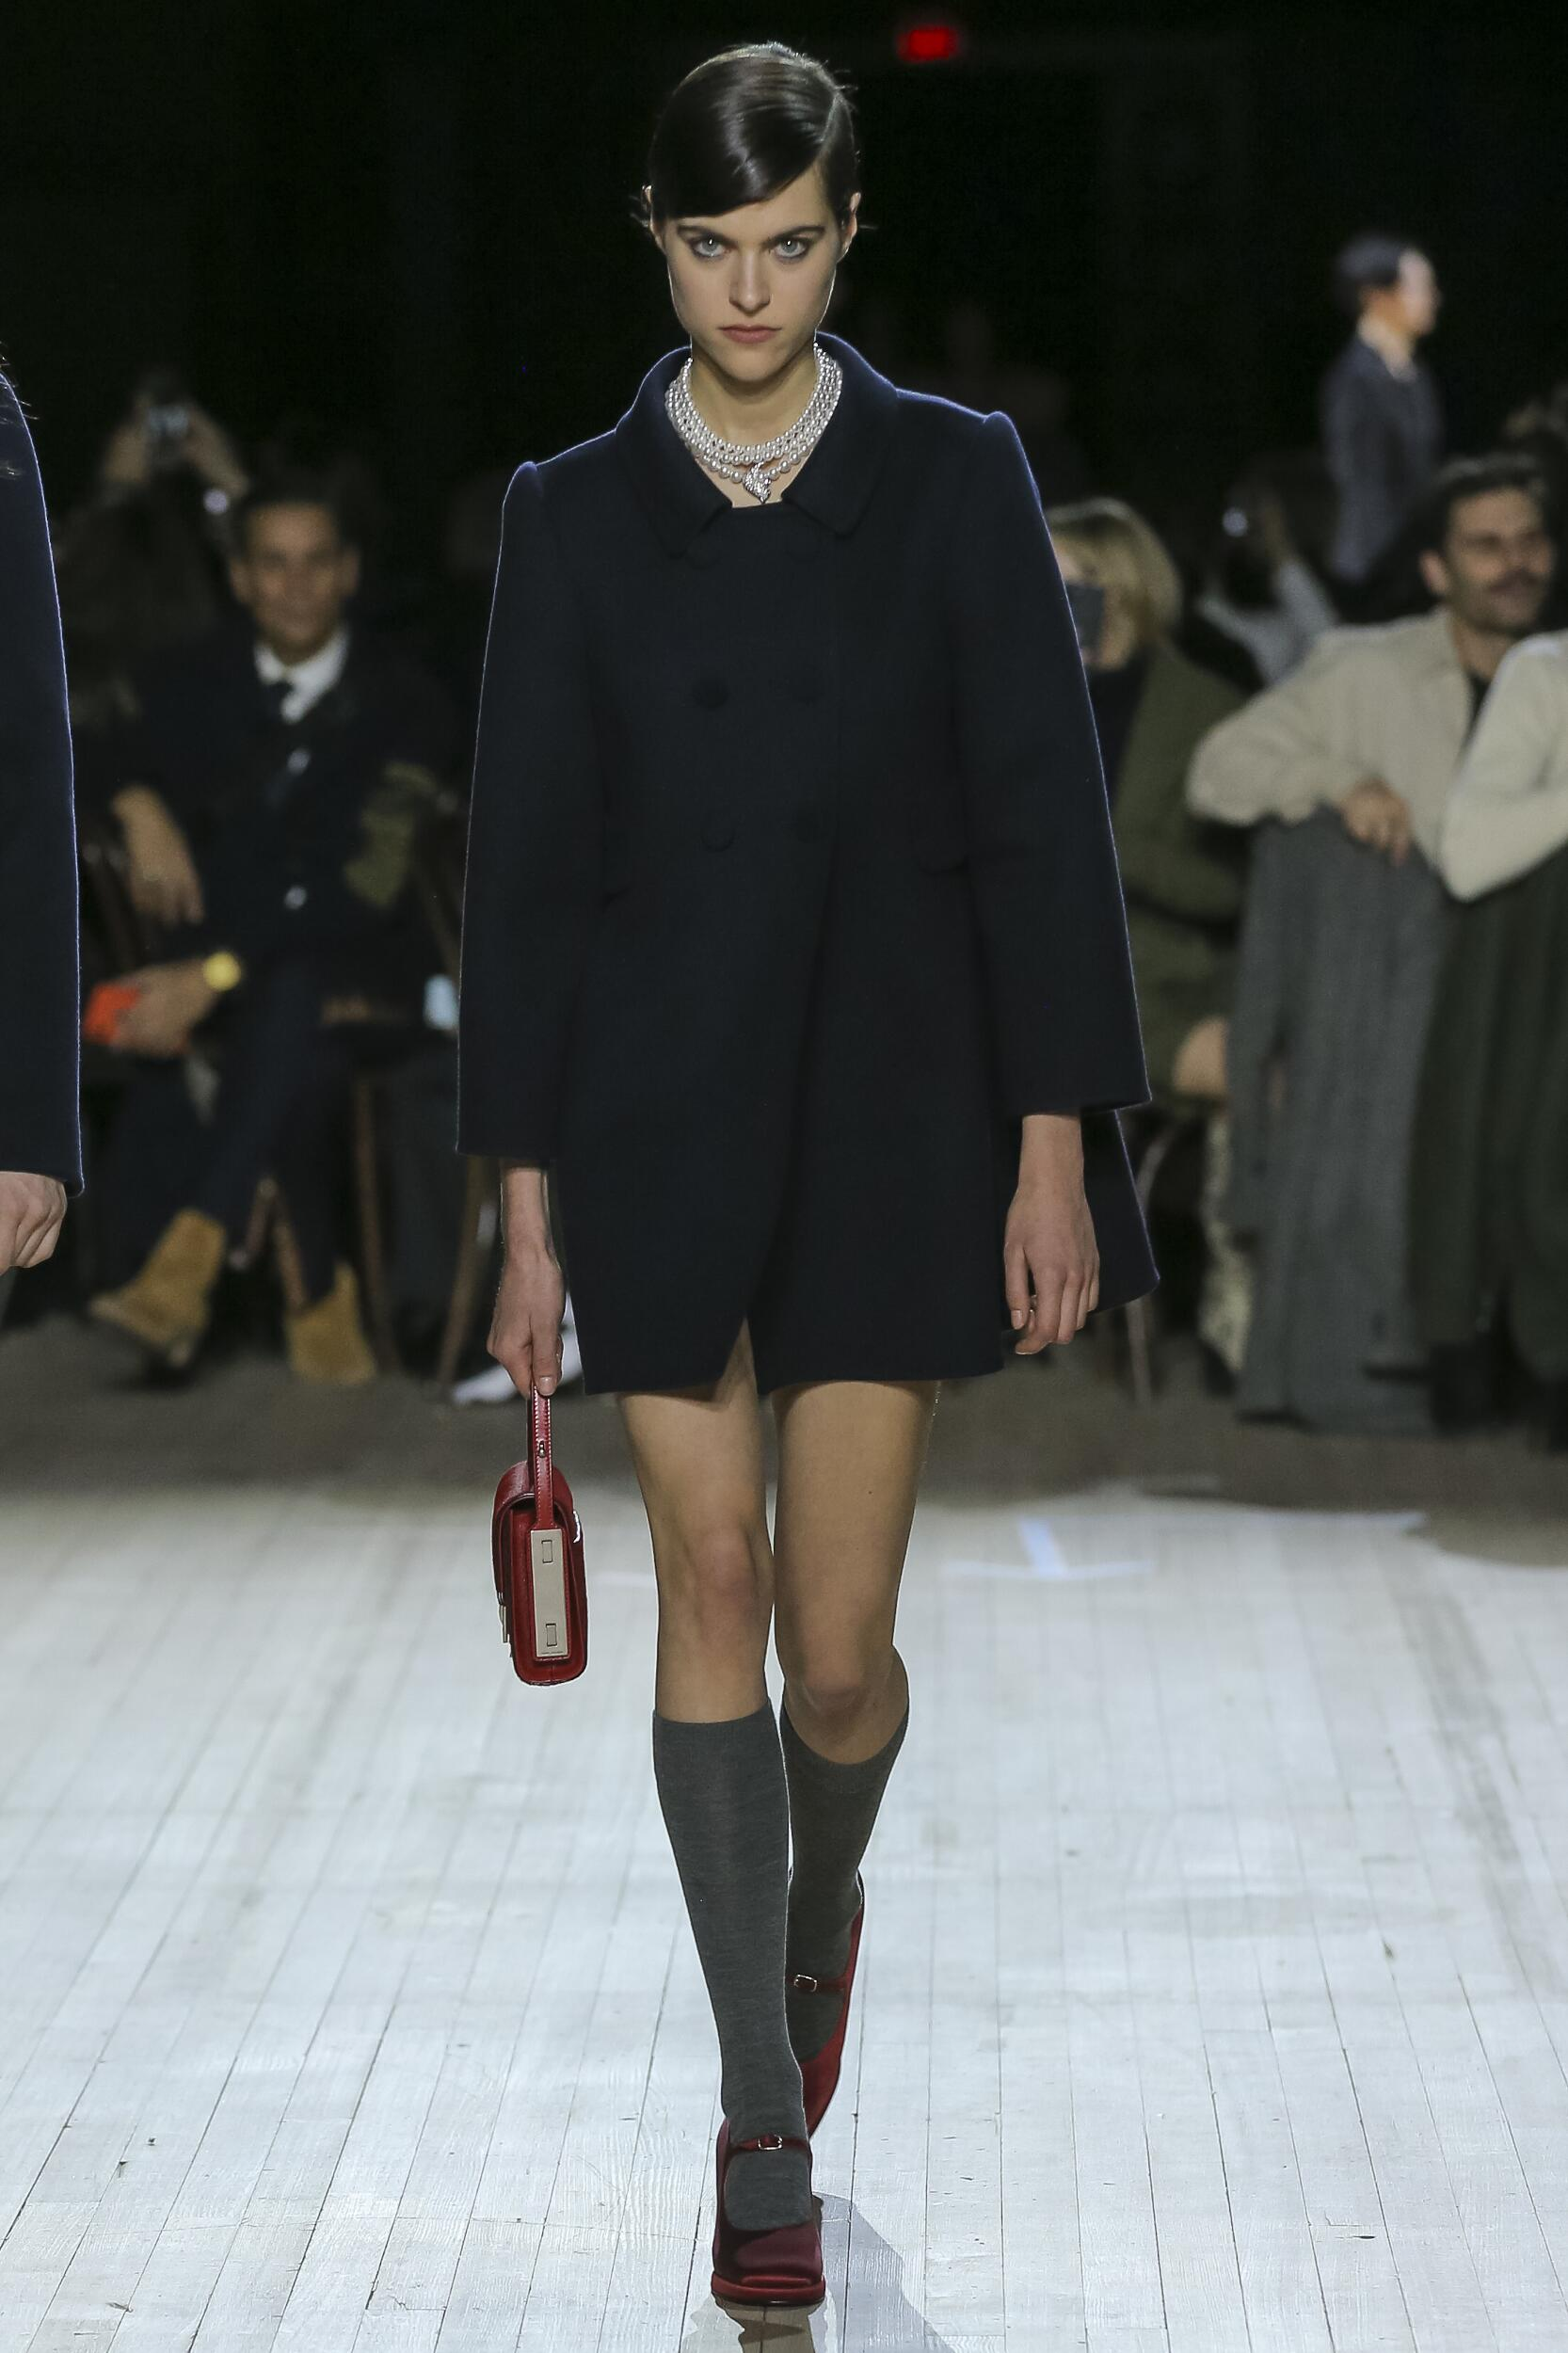 Marc Jacobs Womenswear Collection Trends